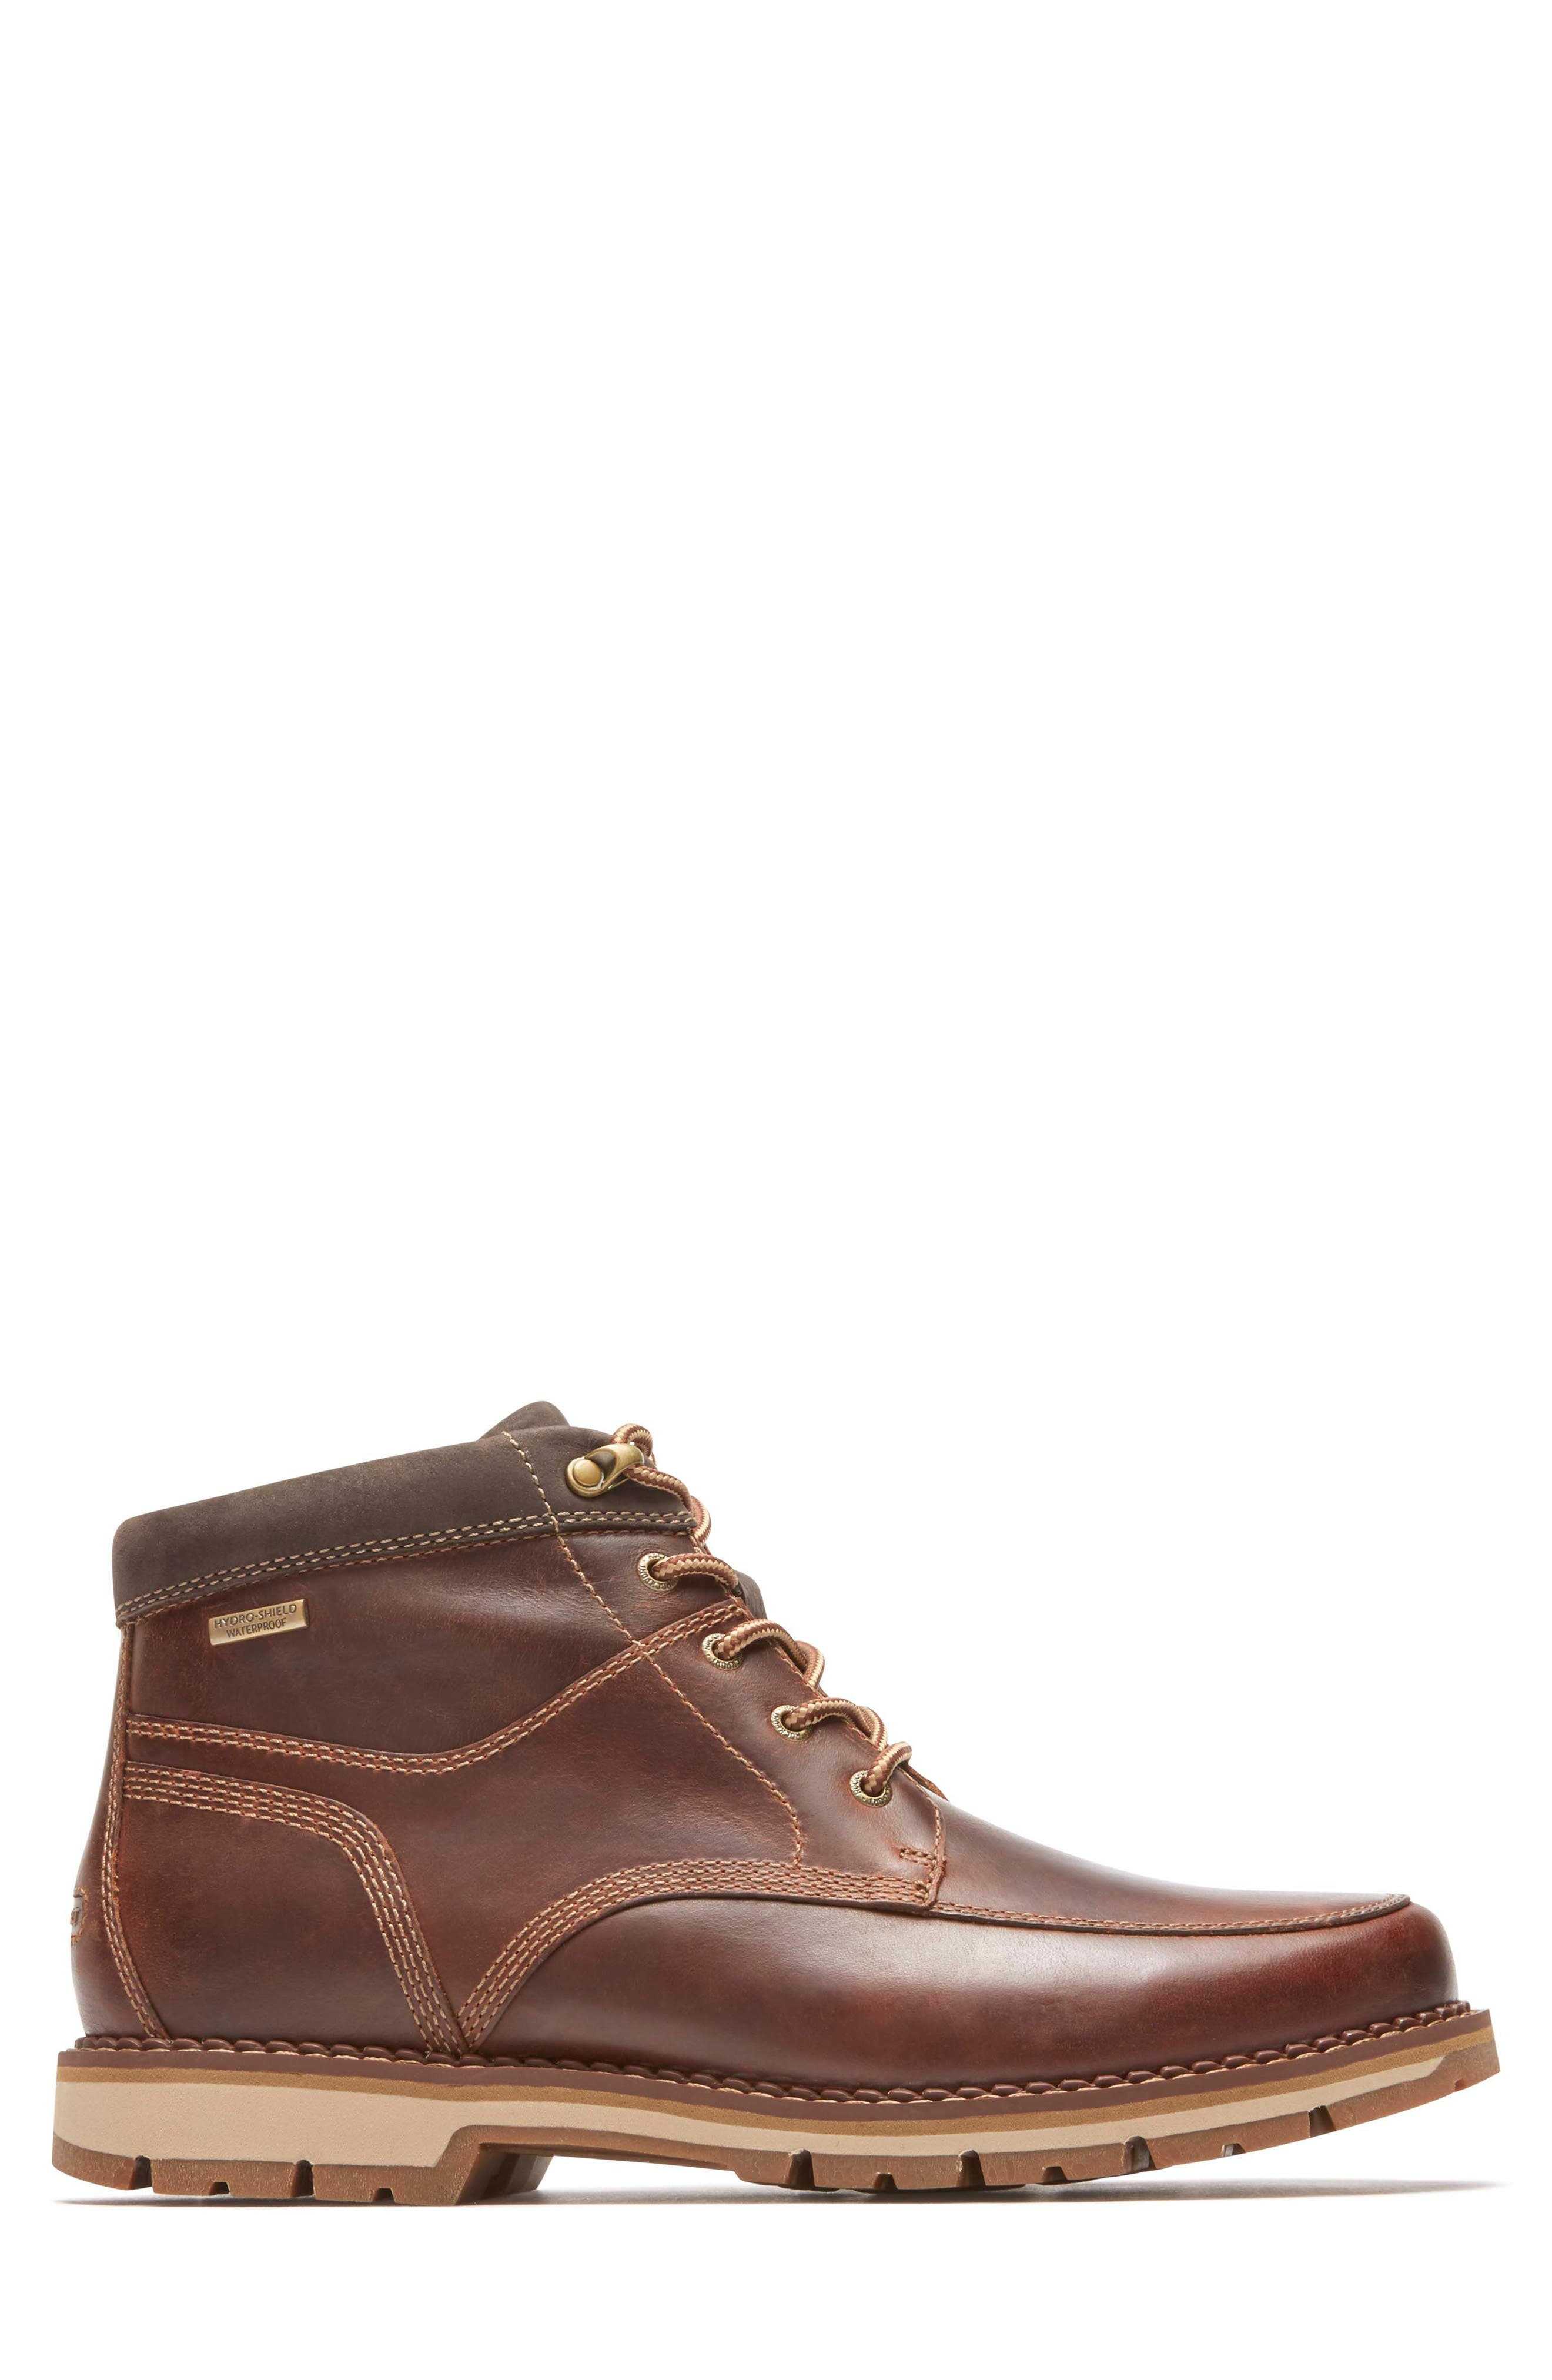 Centry Moc Toe Boot,                             Alternate thumbnail 3, color,                             200